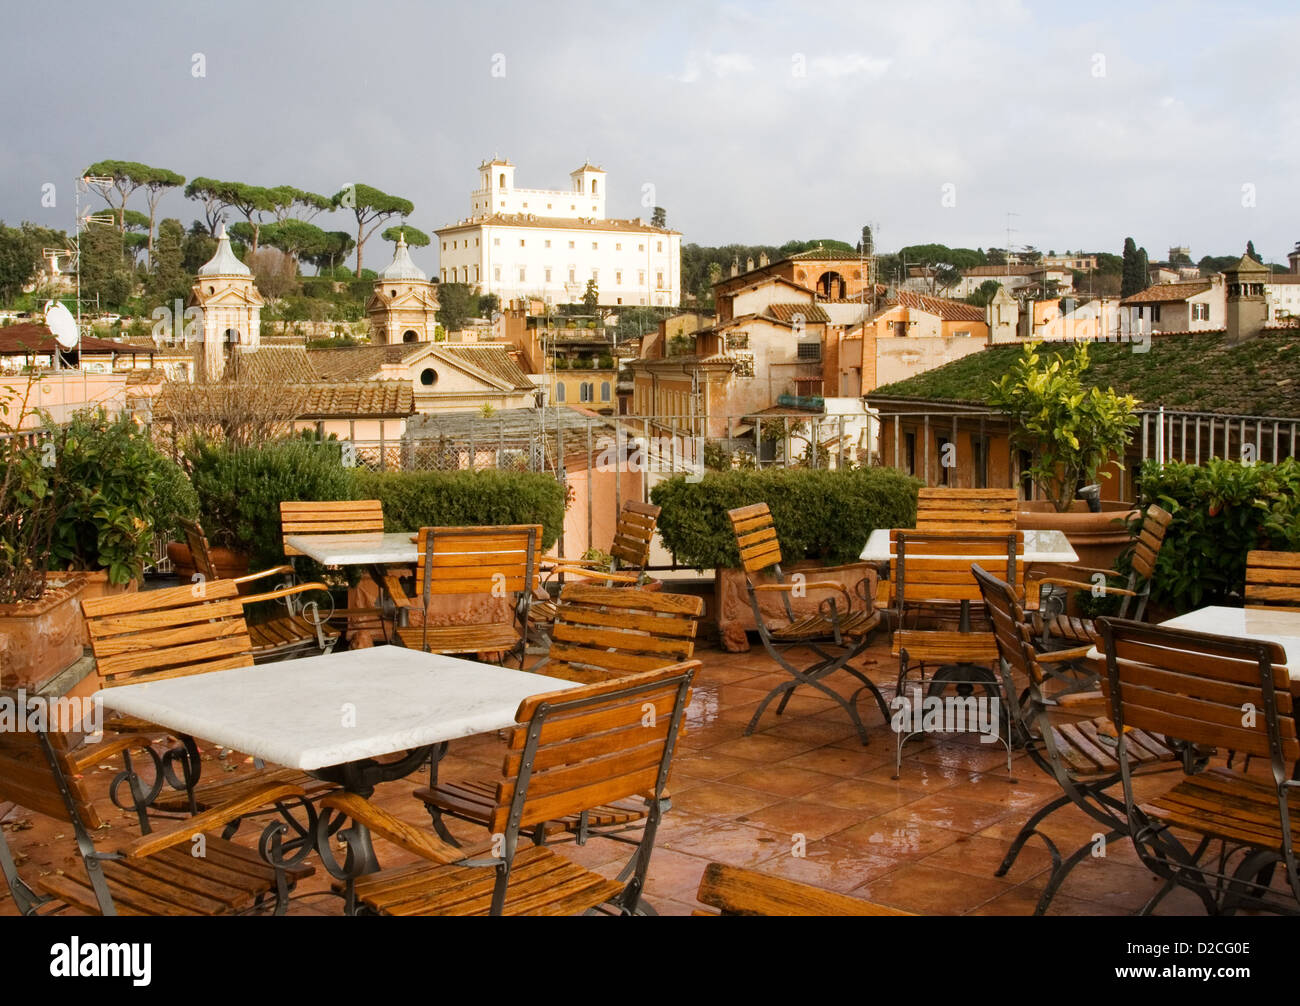 Cafe on a roof, Rome - Stock Image